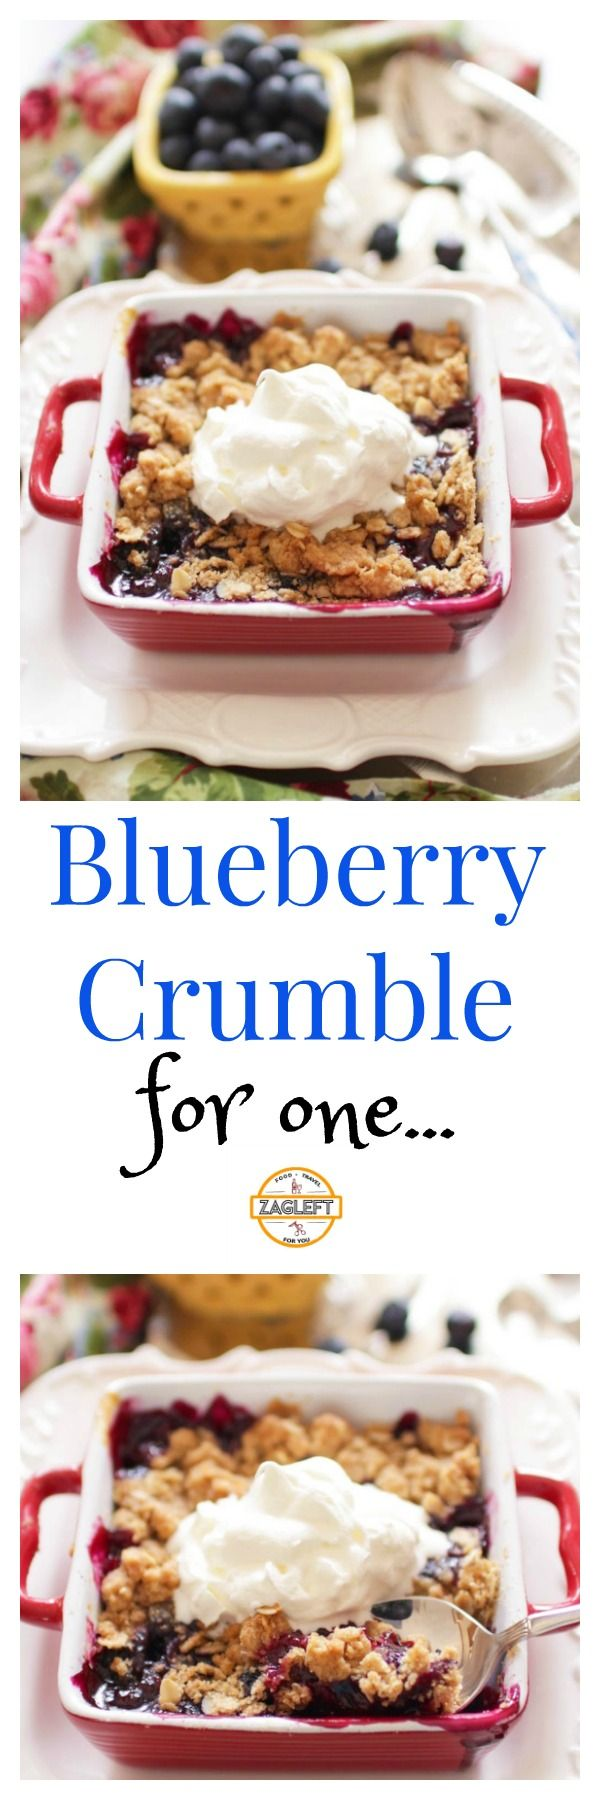 Blueberry Crumble For One – juicy blueberries piled high in a small baking dish and topped with a delicious oat topping. A wonderful single serving dessert.